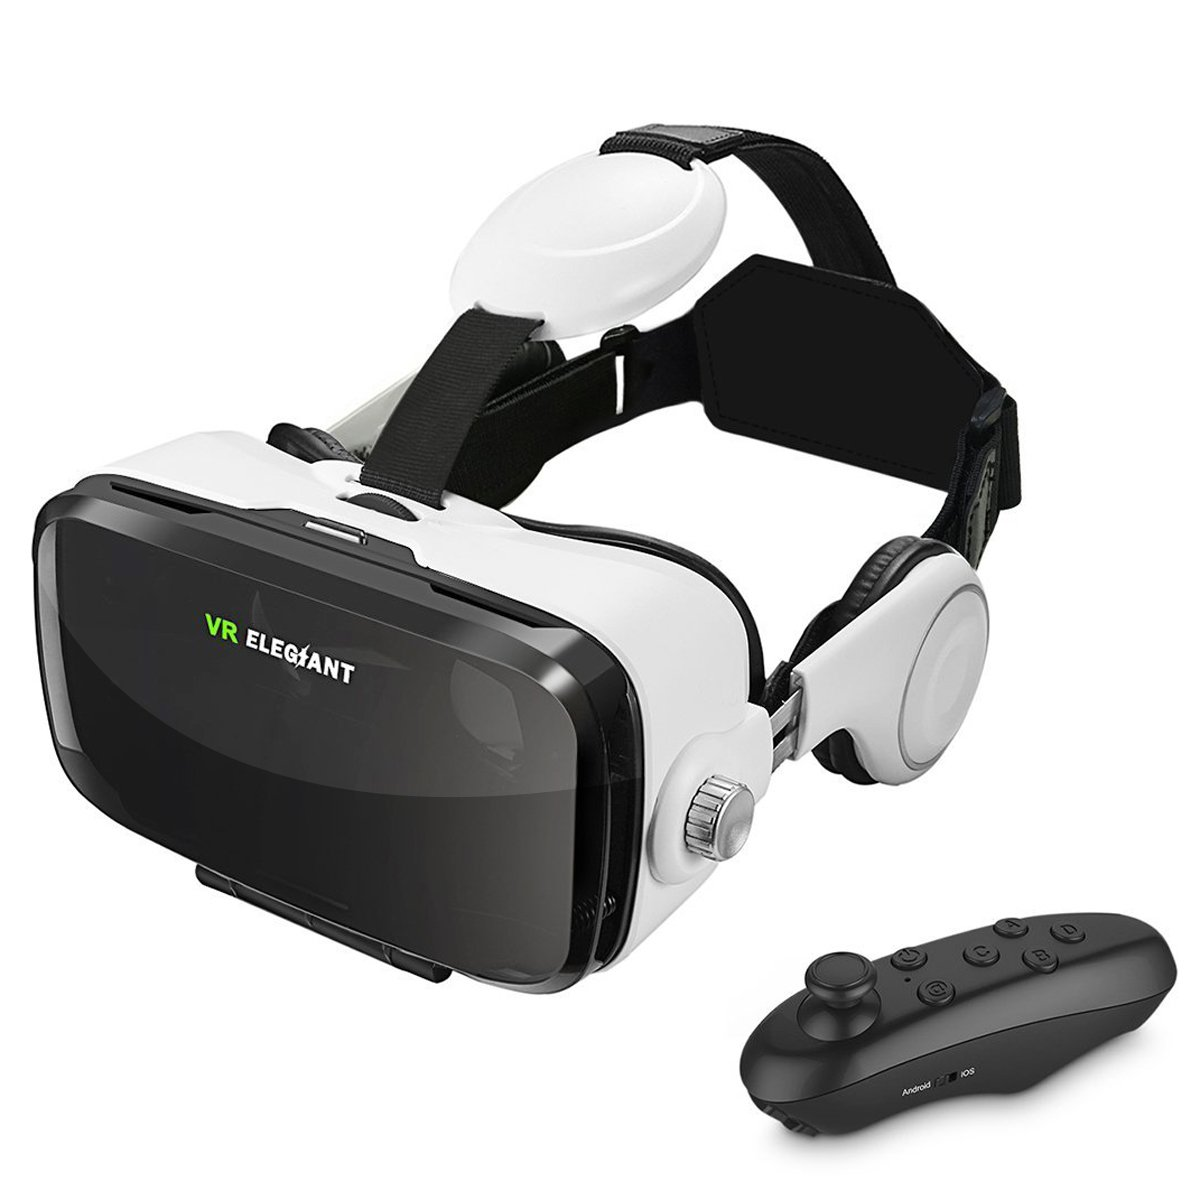 ELEGIANT VR Headset, 3D VR Glasses, Virtual Reality Headset Built-in Headphone